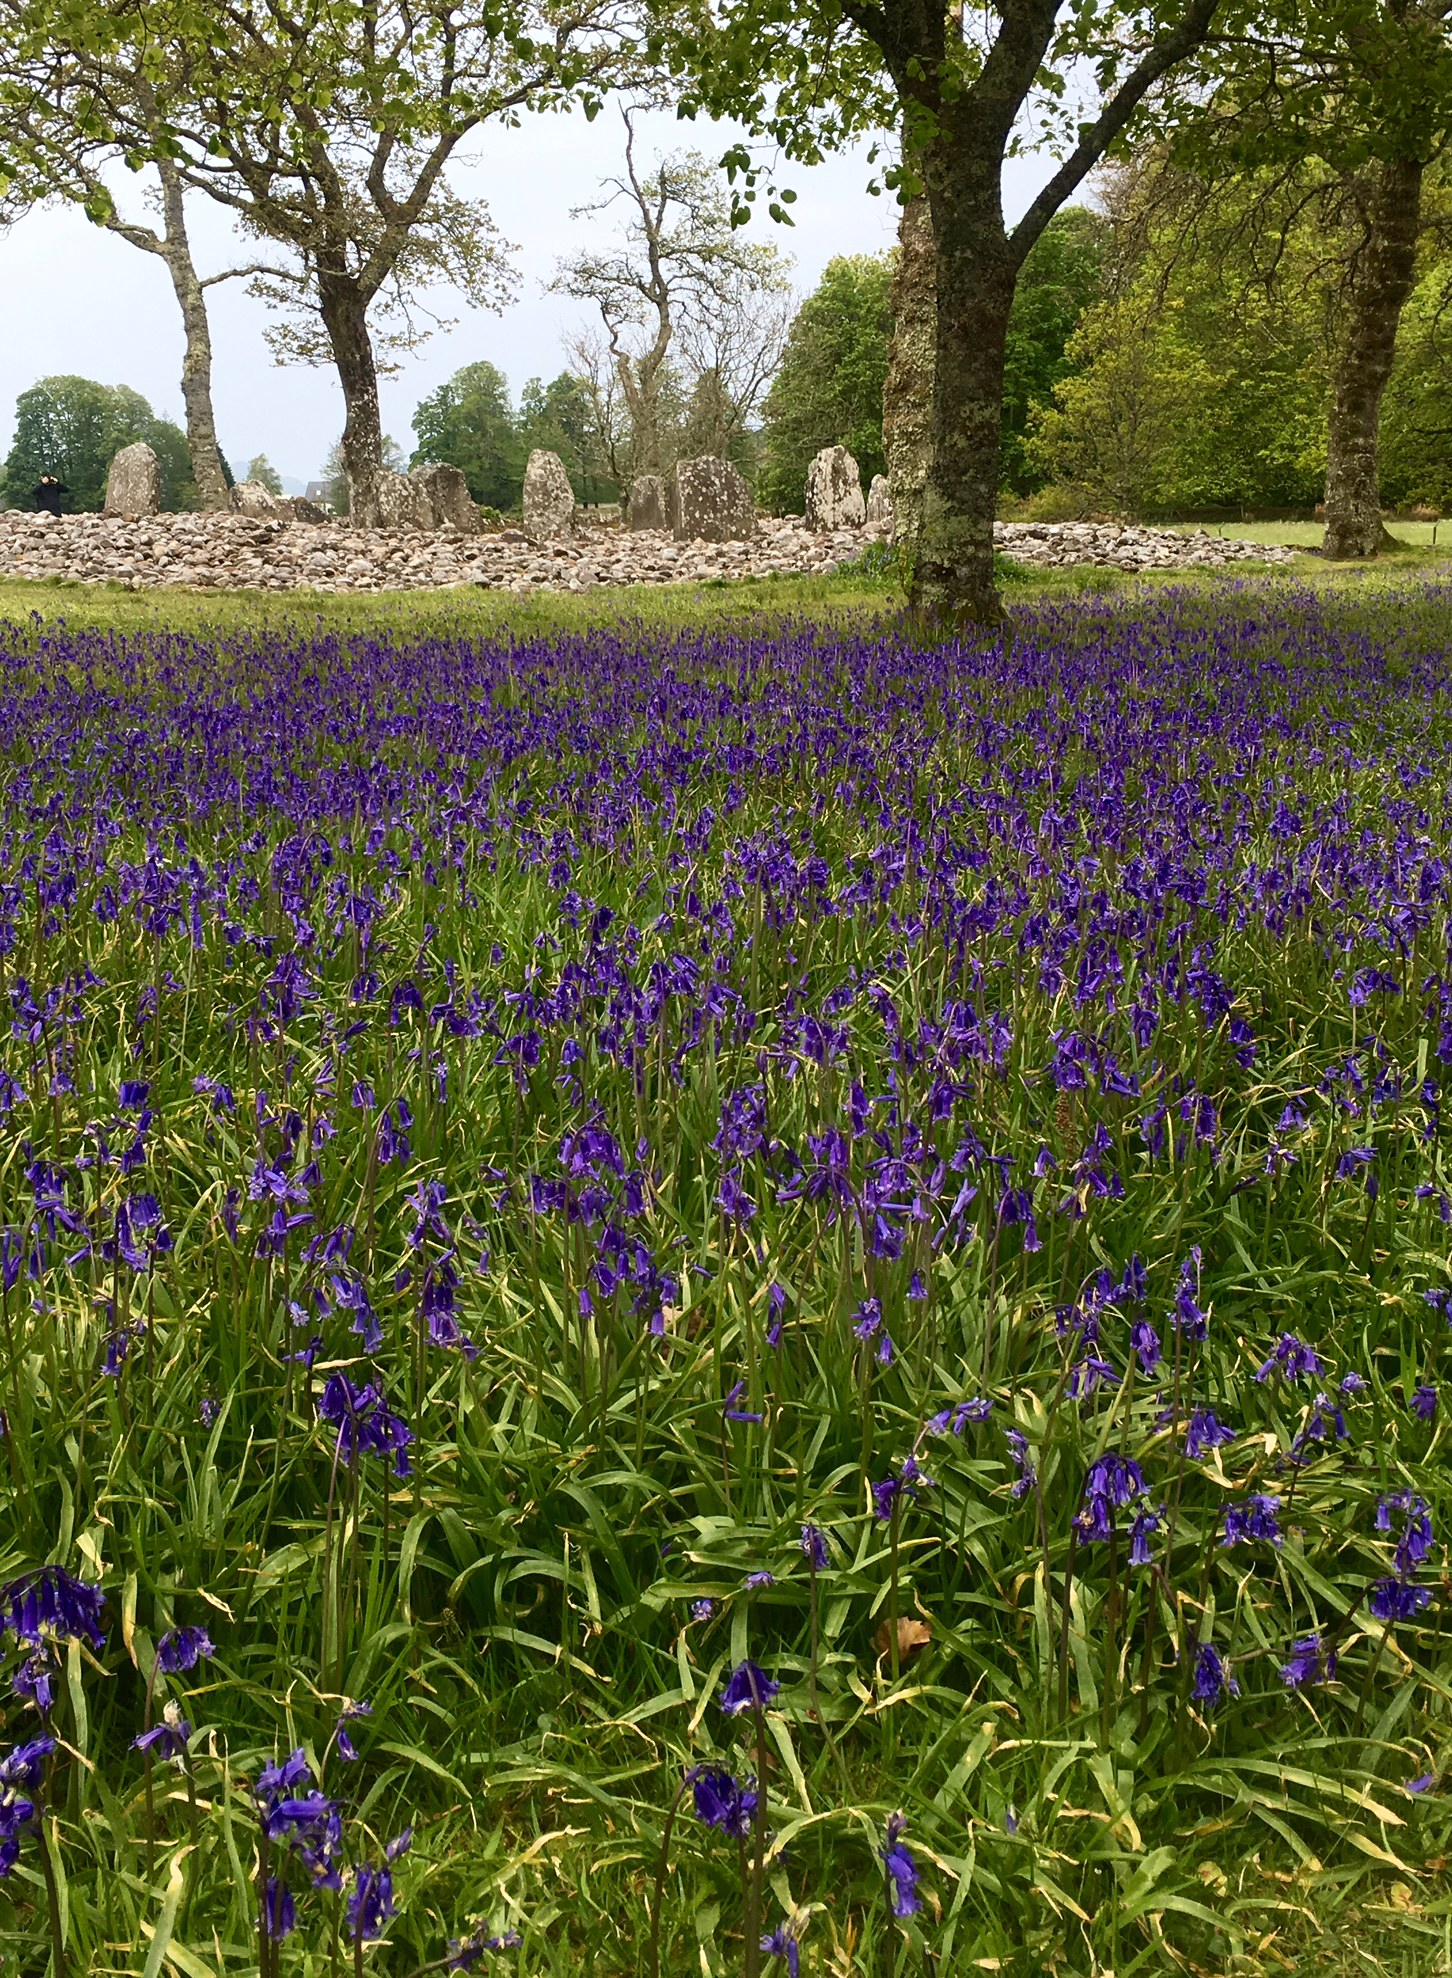 Temple Wood stone circle in the bluebells